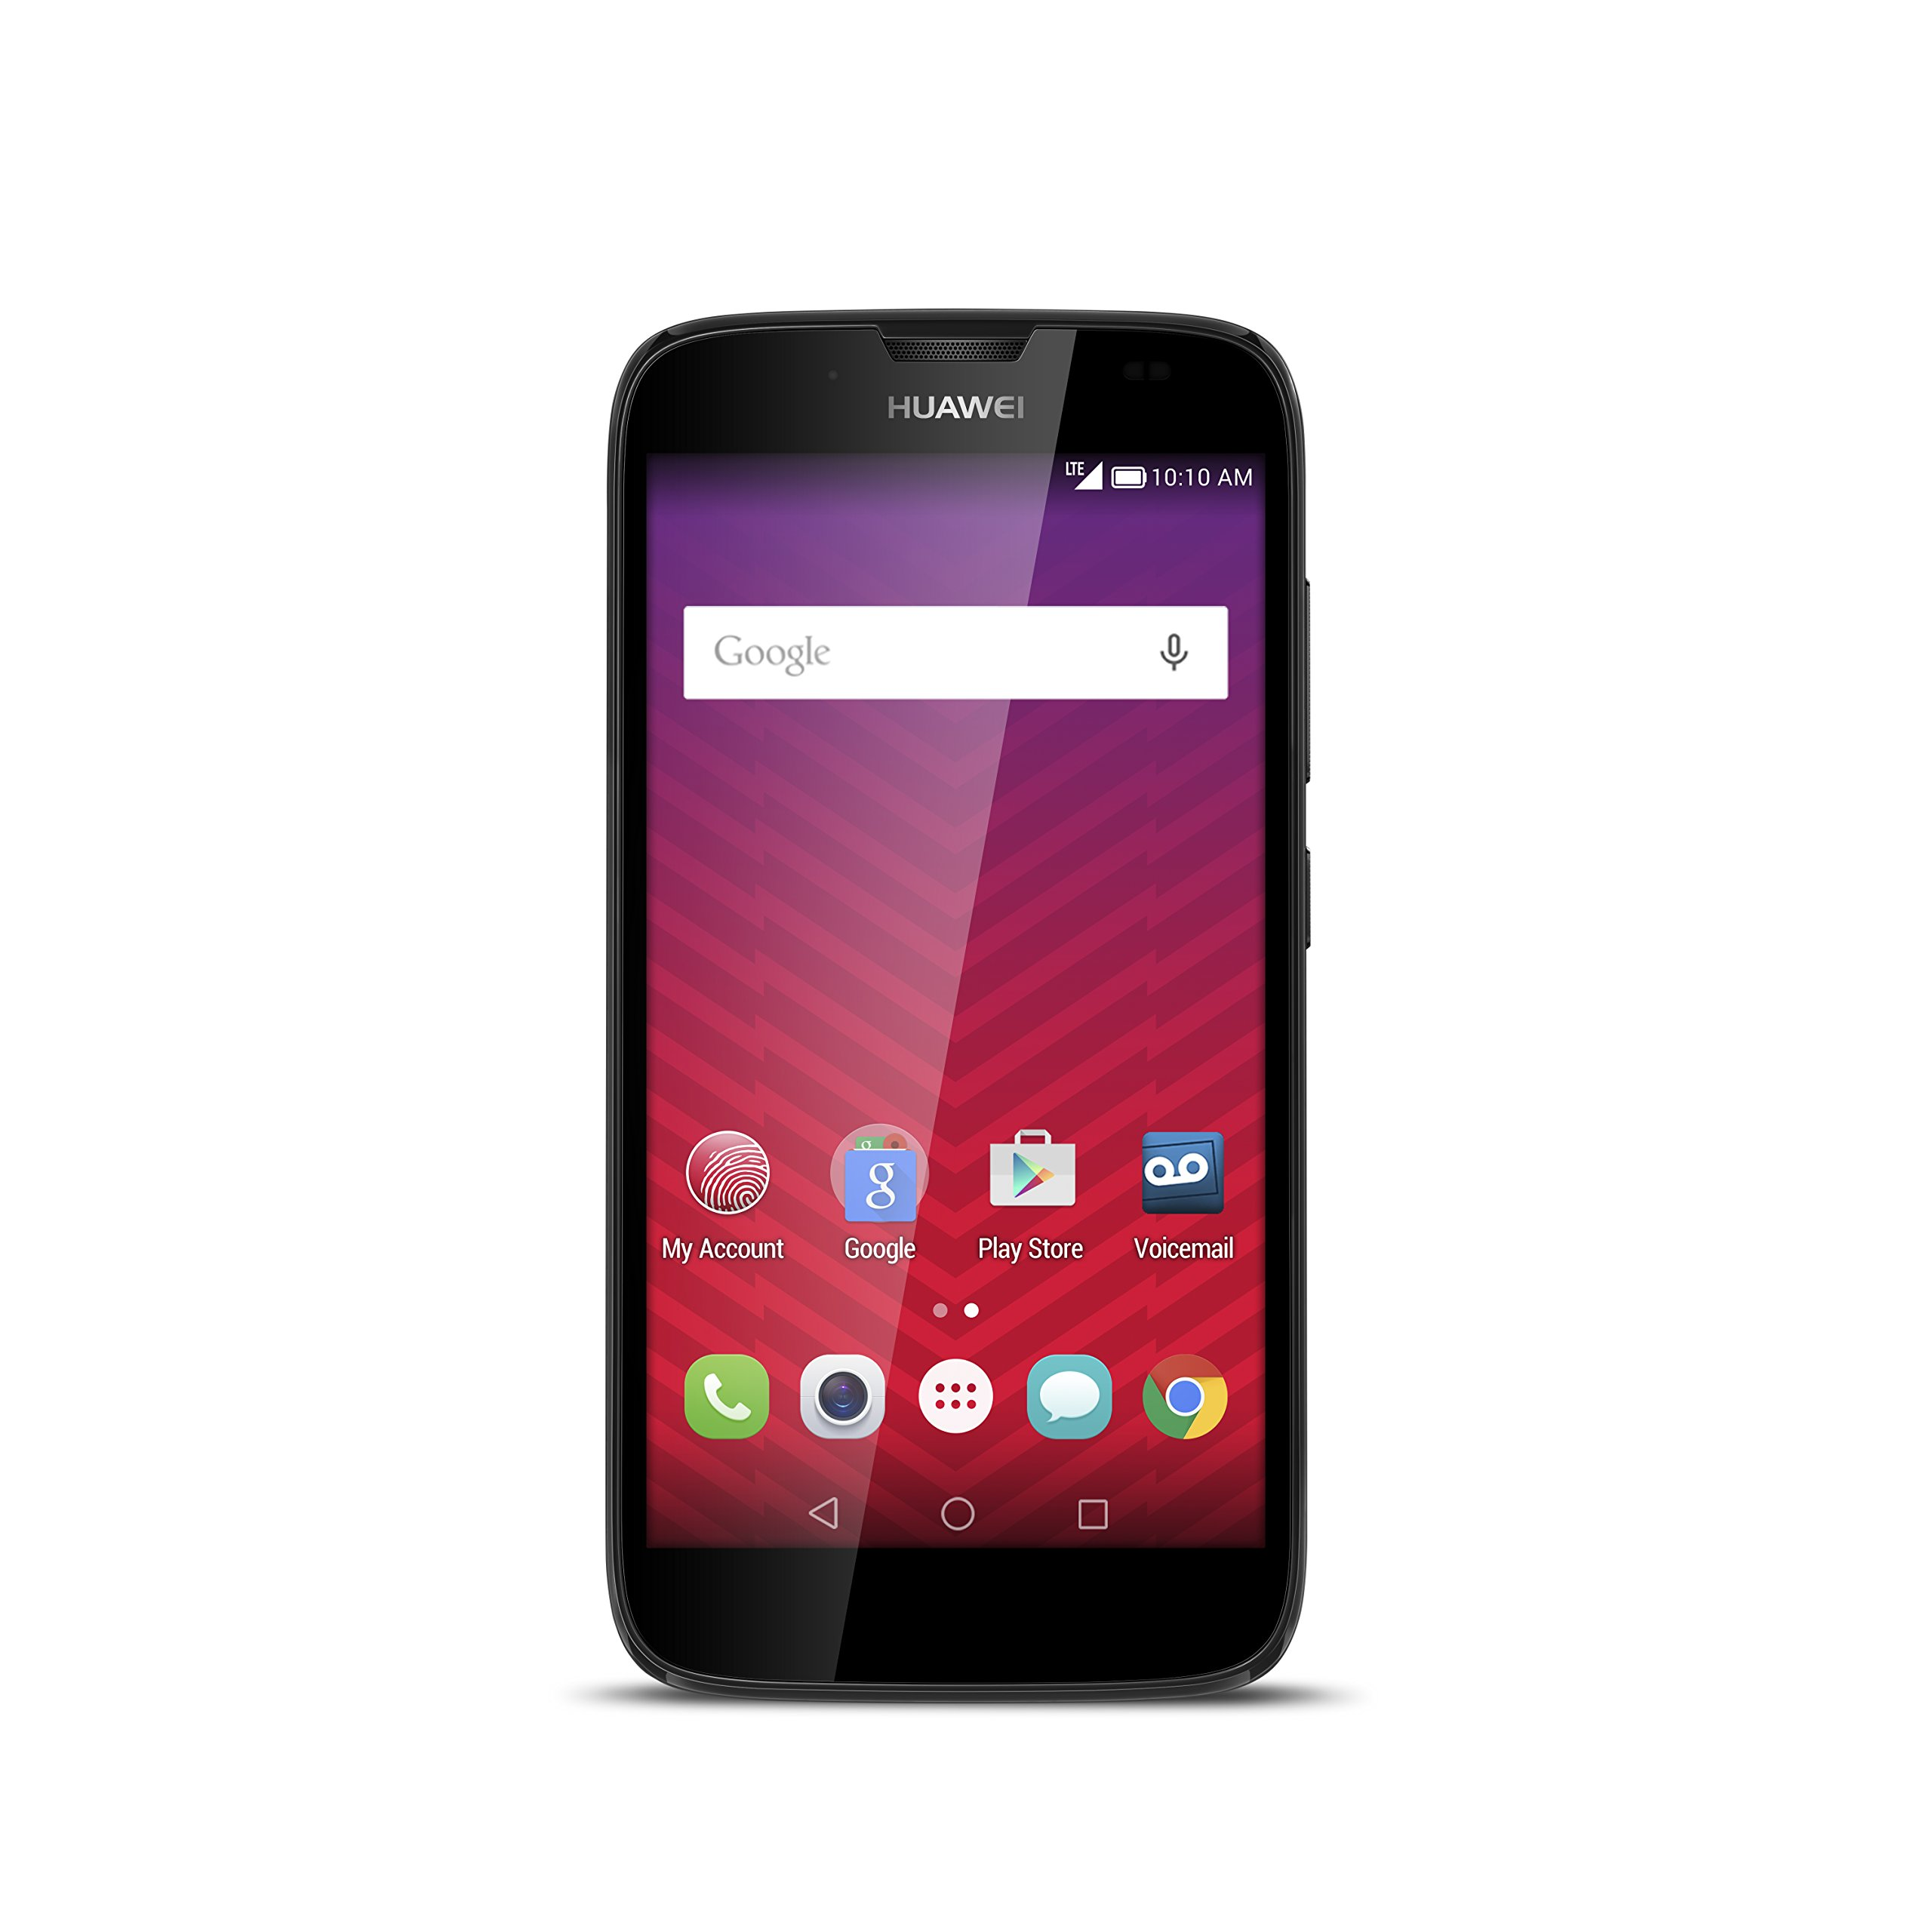 Huawei Union - No Contract Phone - Black - (Virgin Mobile)